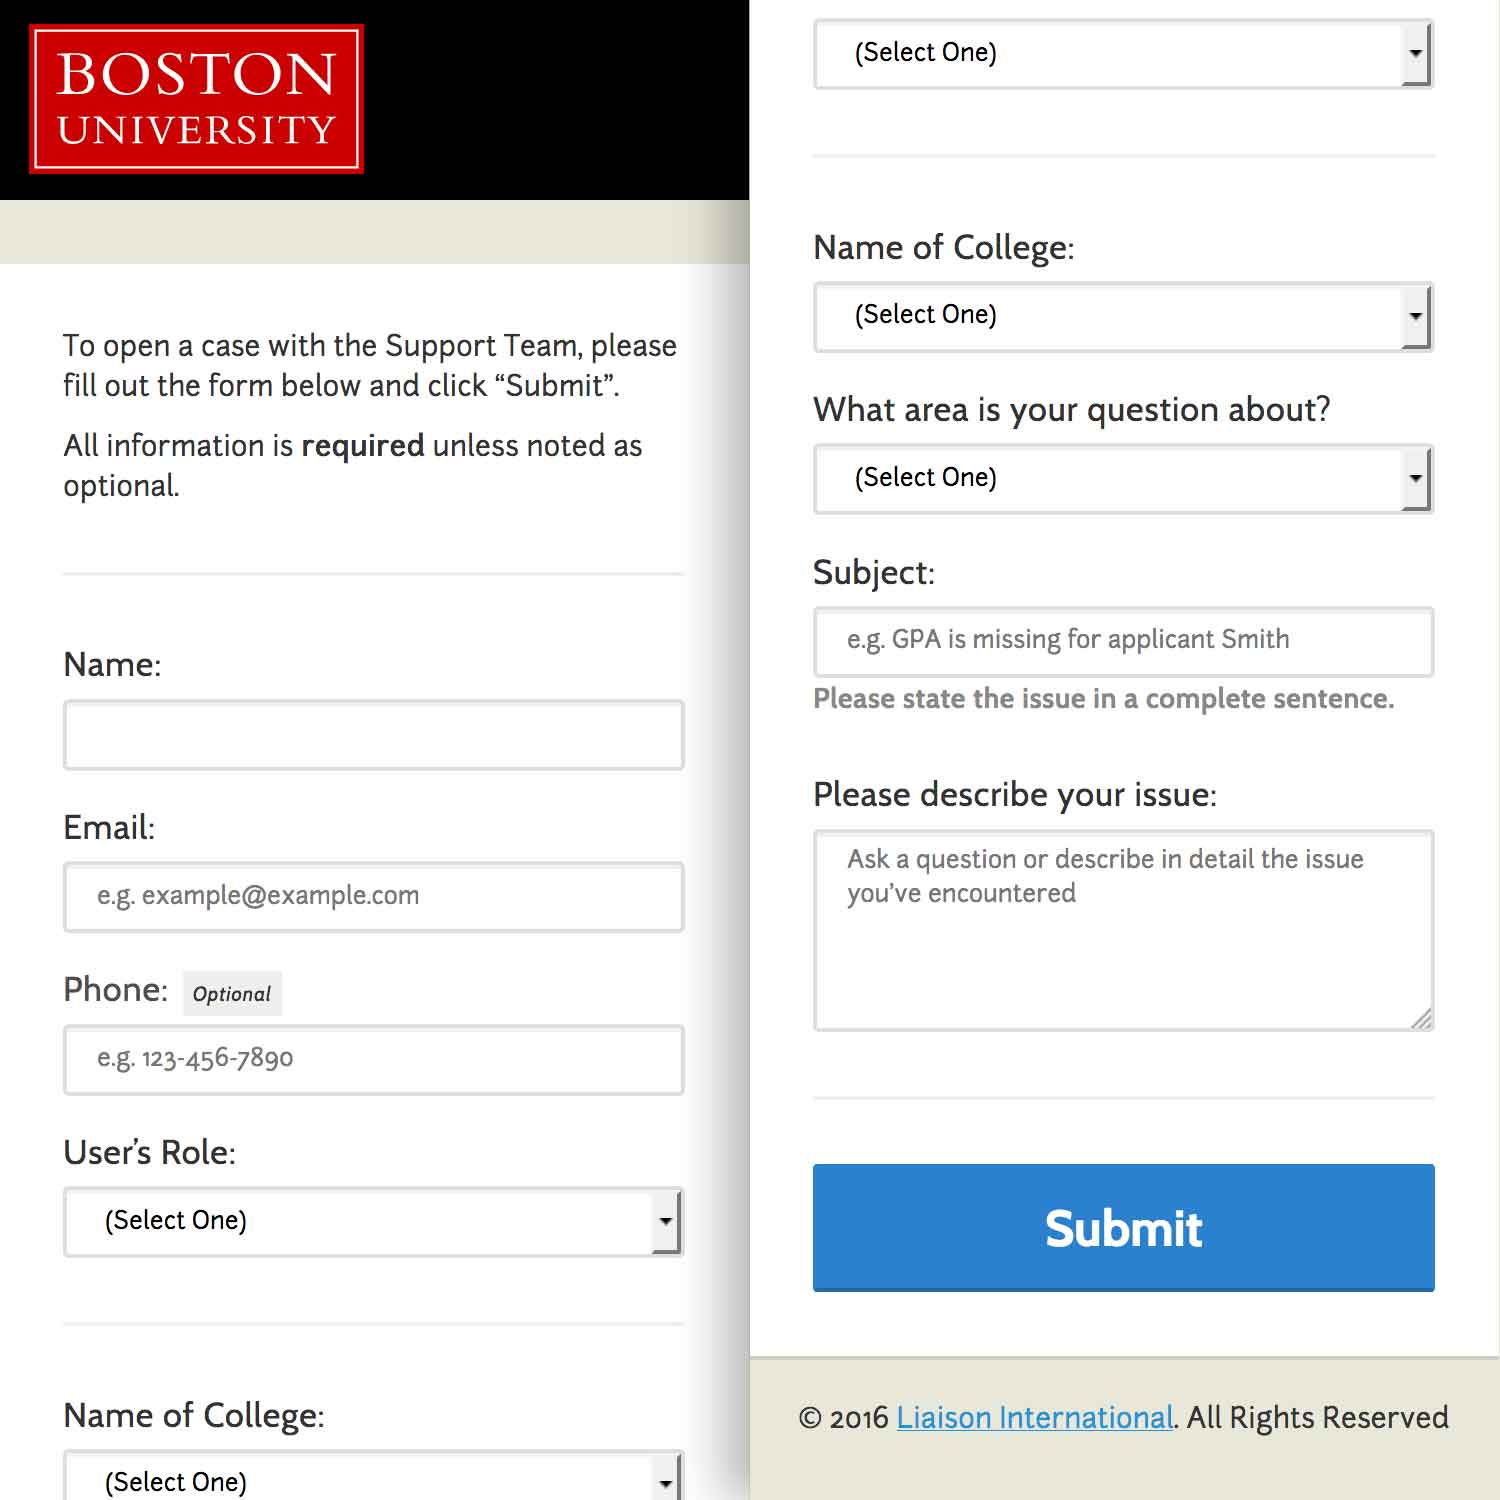 a screenshot of the Boston University Support Form for Liaison